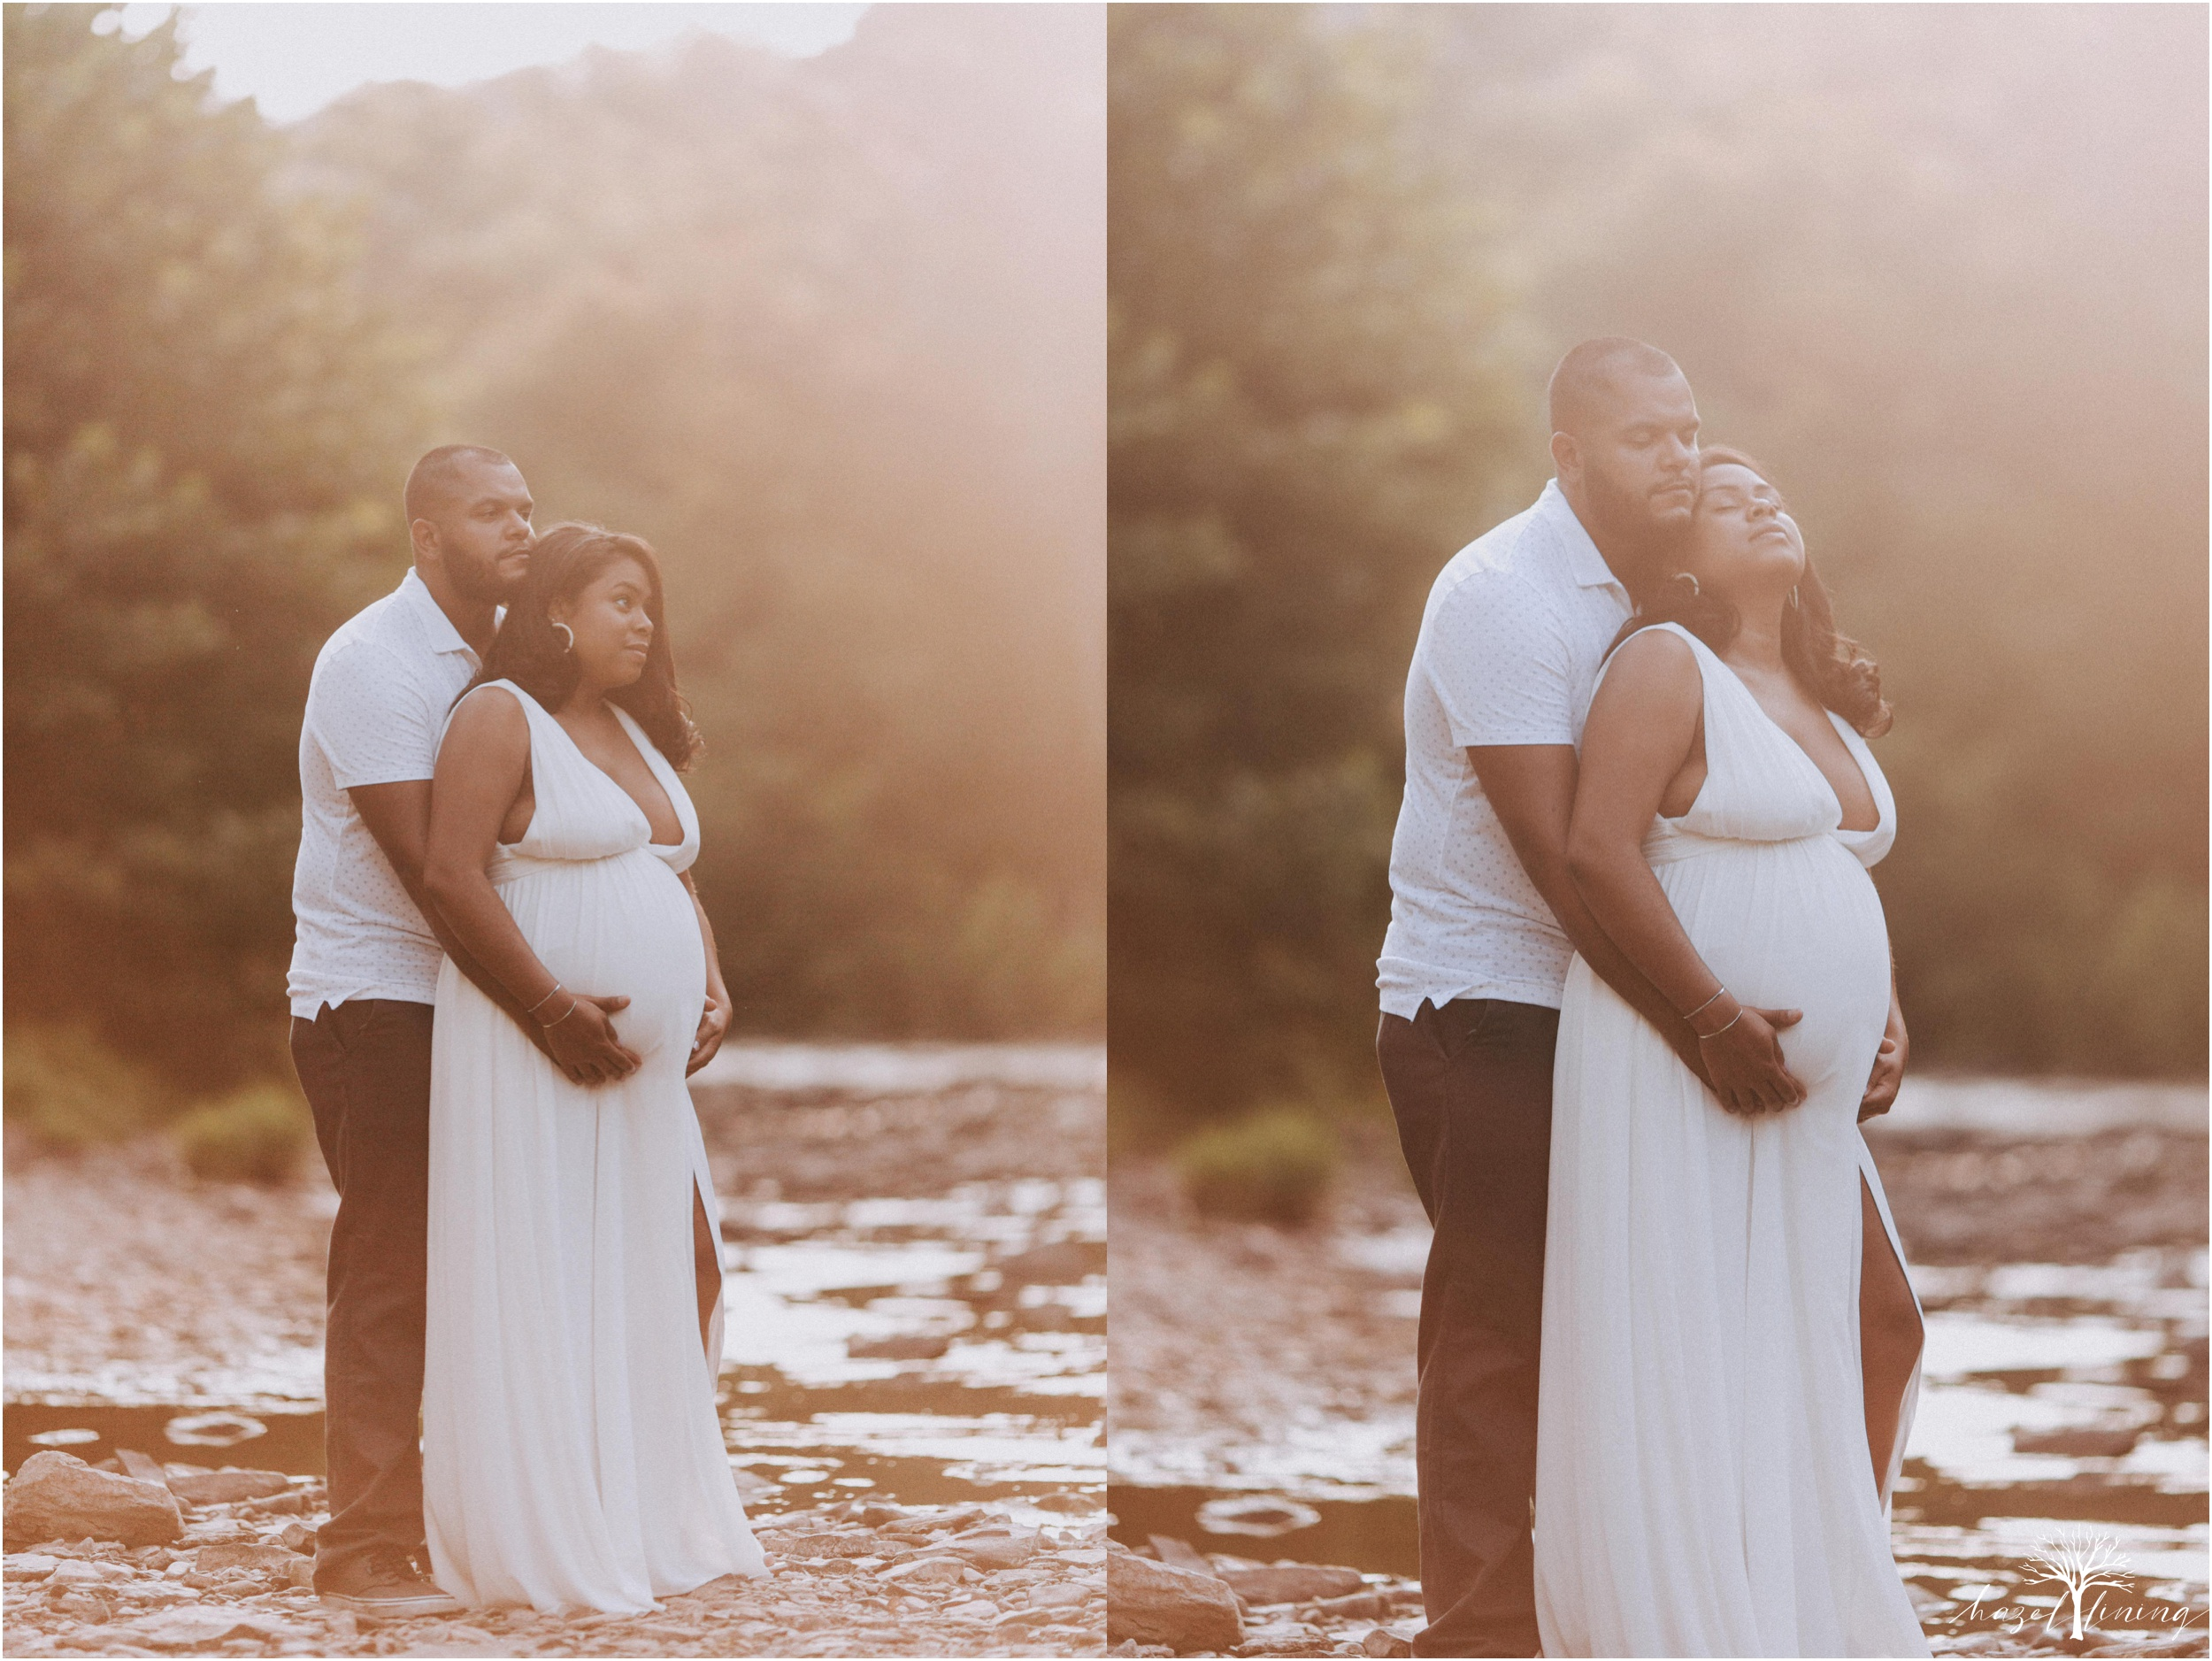 leyka-kristofer-chaparro-ralph-stover-state-park-summer-golden-hour-stream-maternity-session-hazel-lining-travel-wedding-elopement-photography_0024.jpg